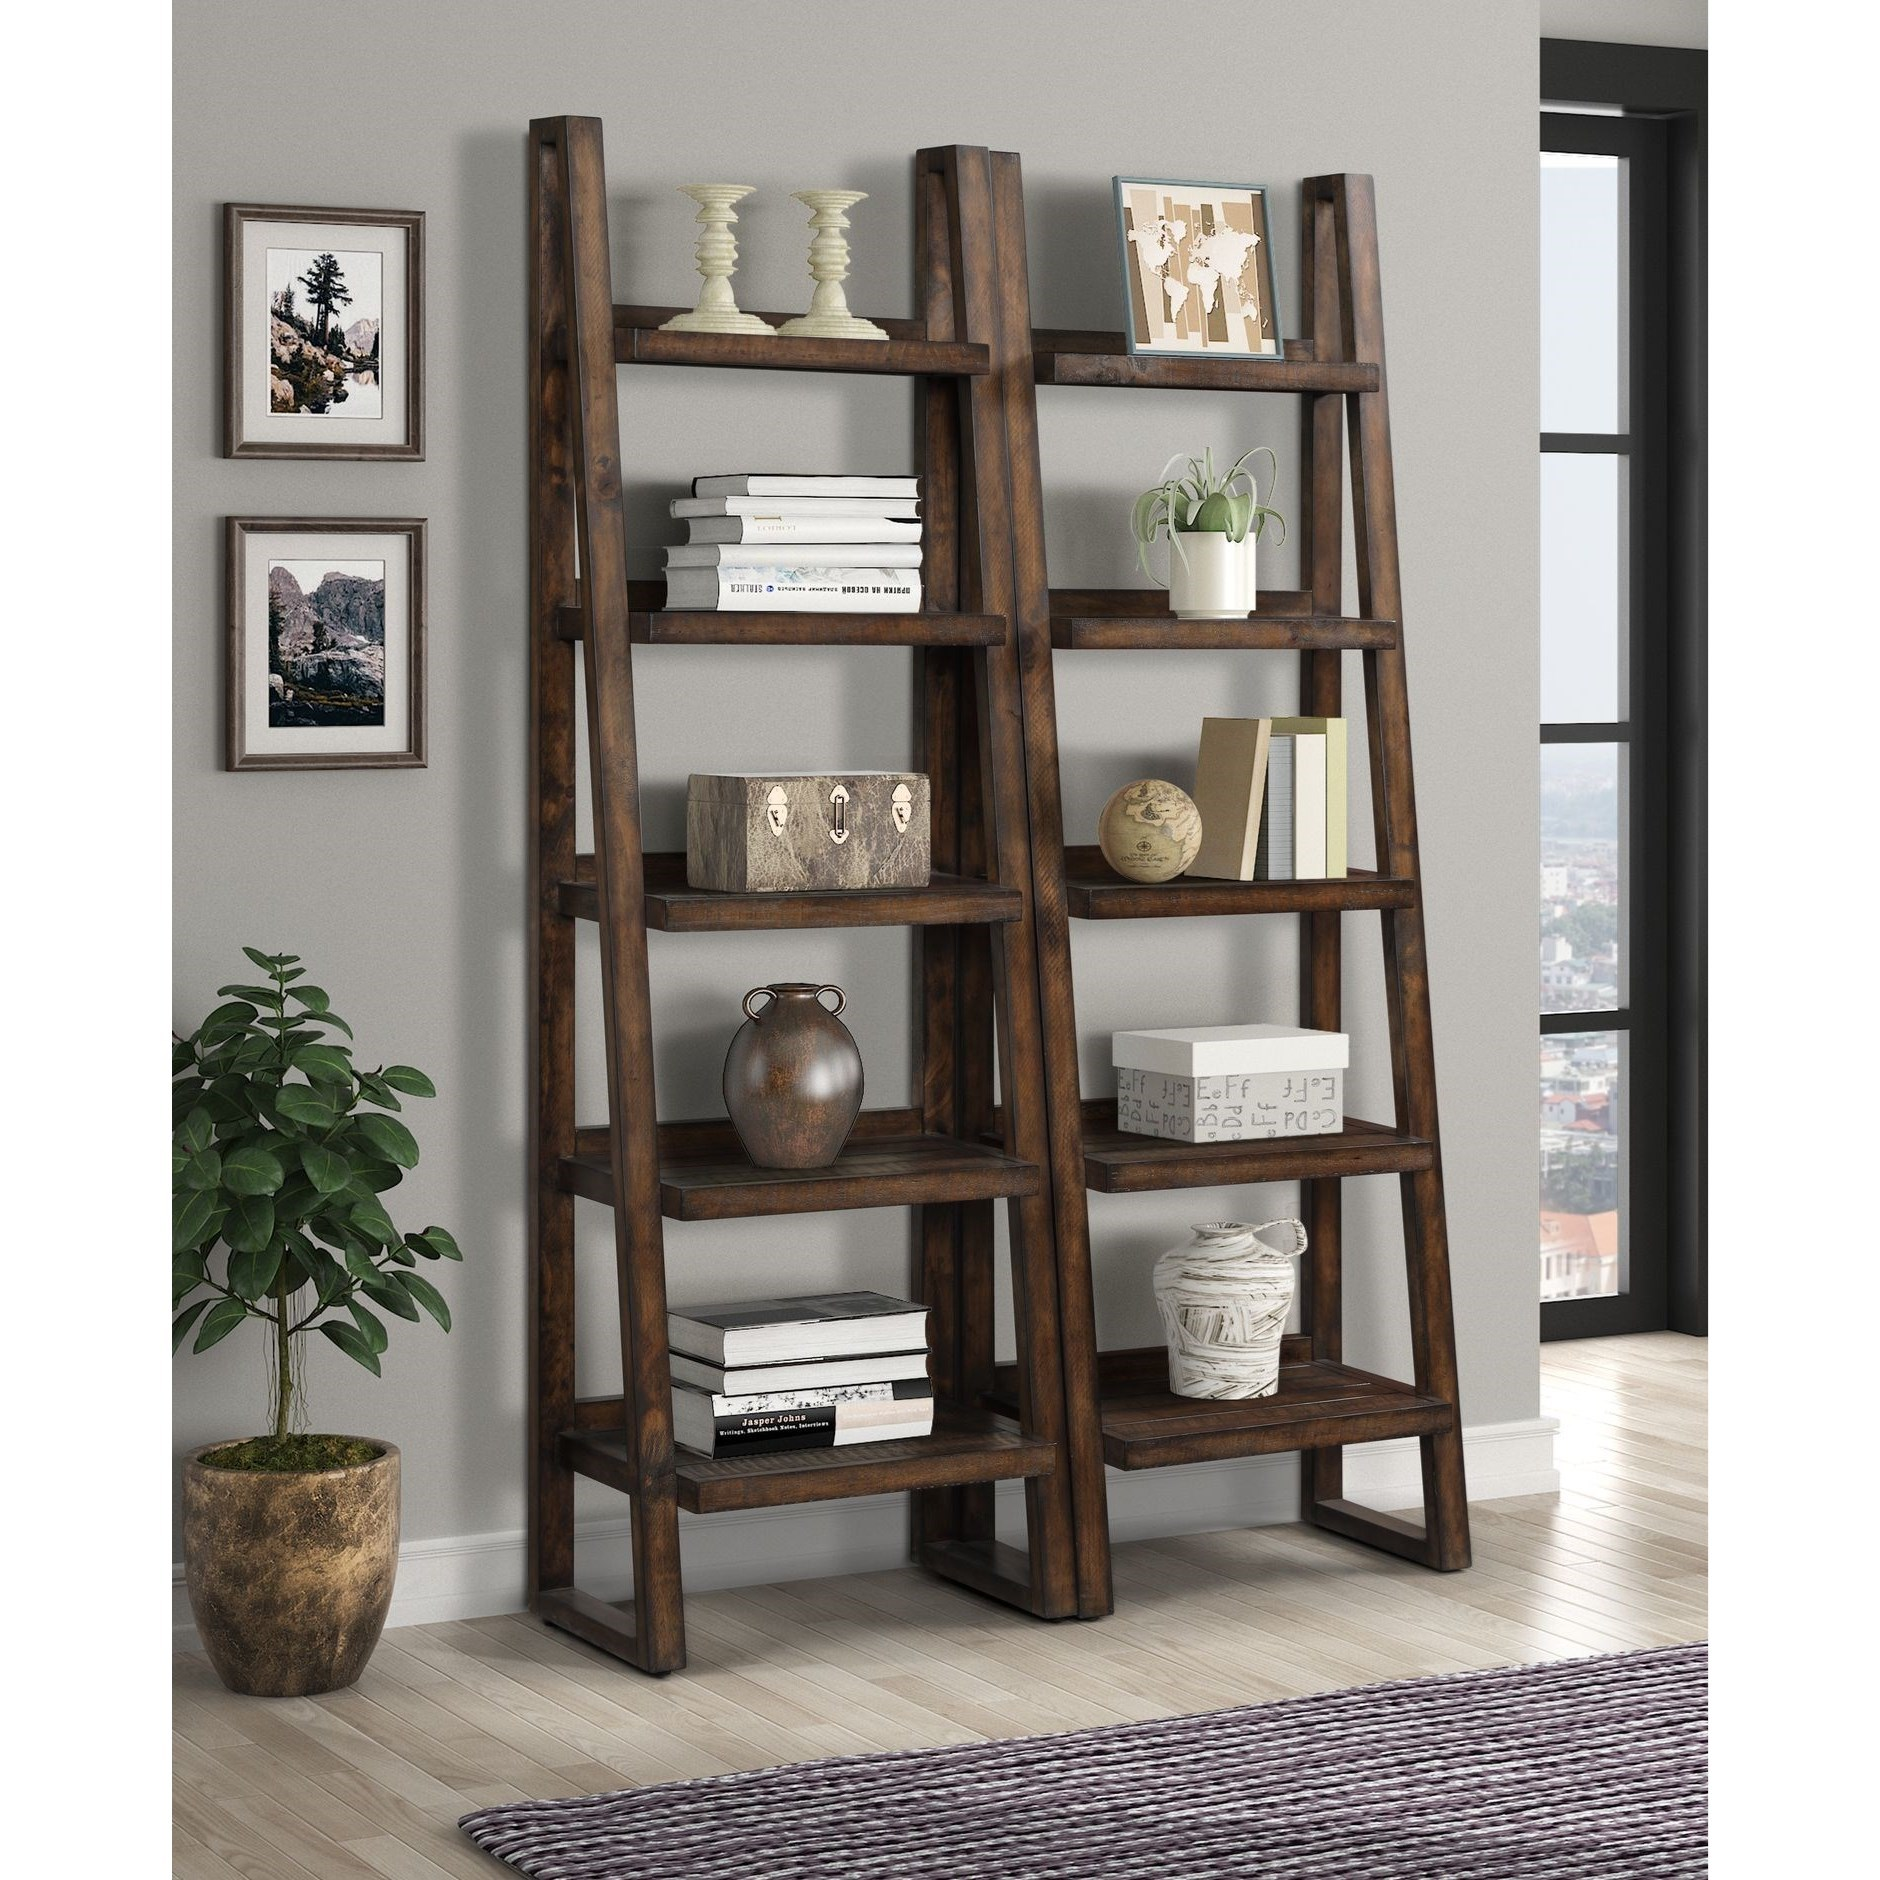 Tempe Pair of Etagere Bookcases by Parker House at Dream Home Interiors